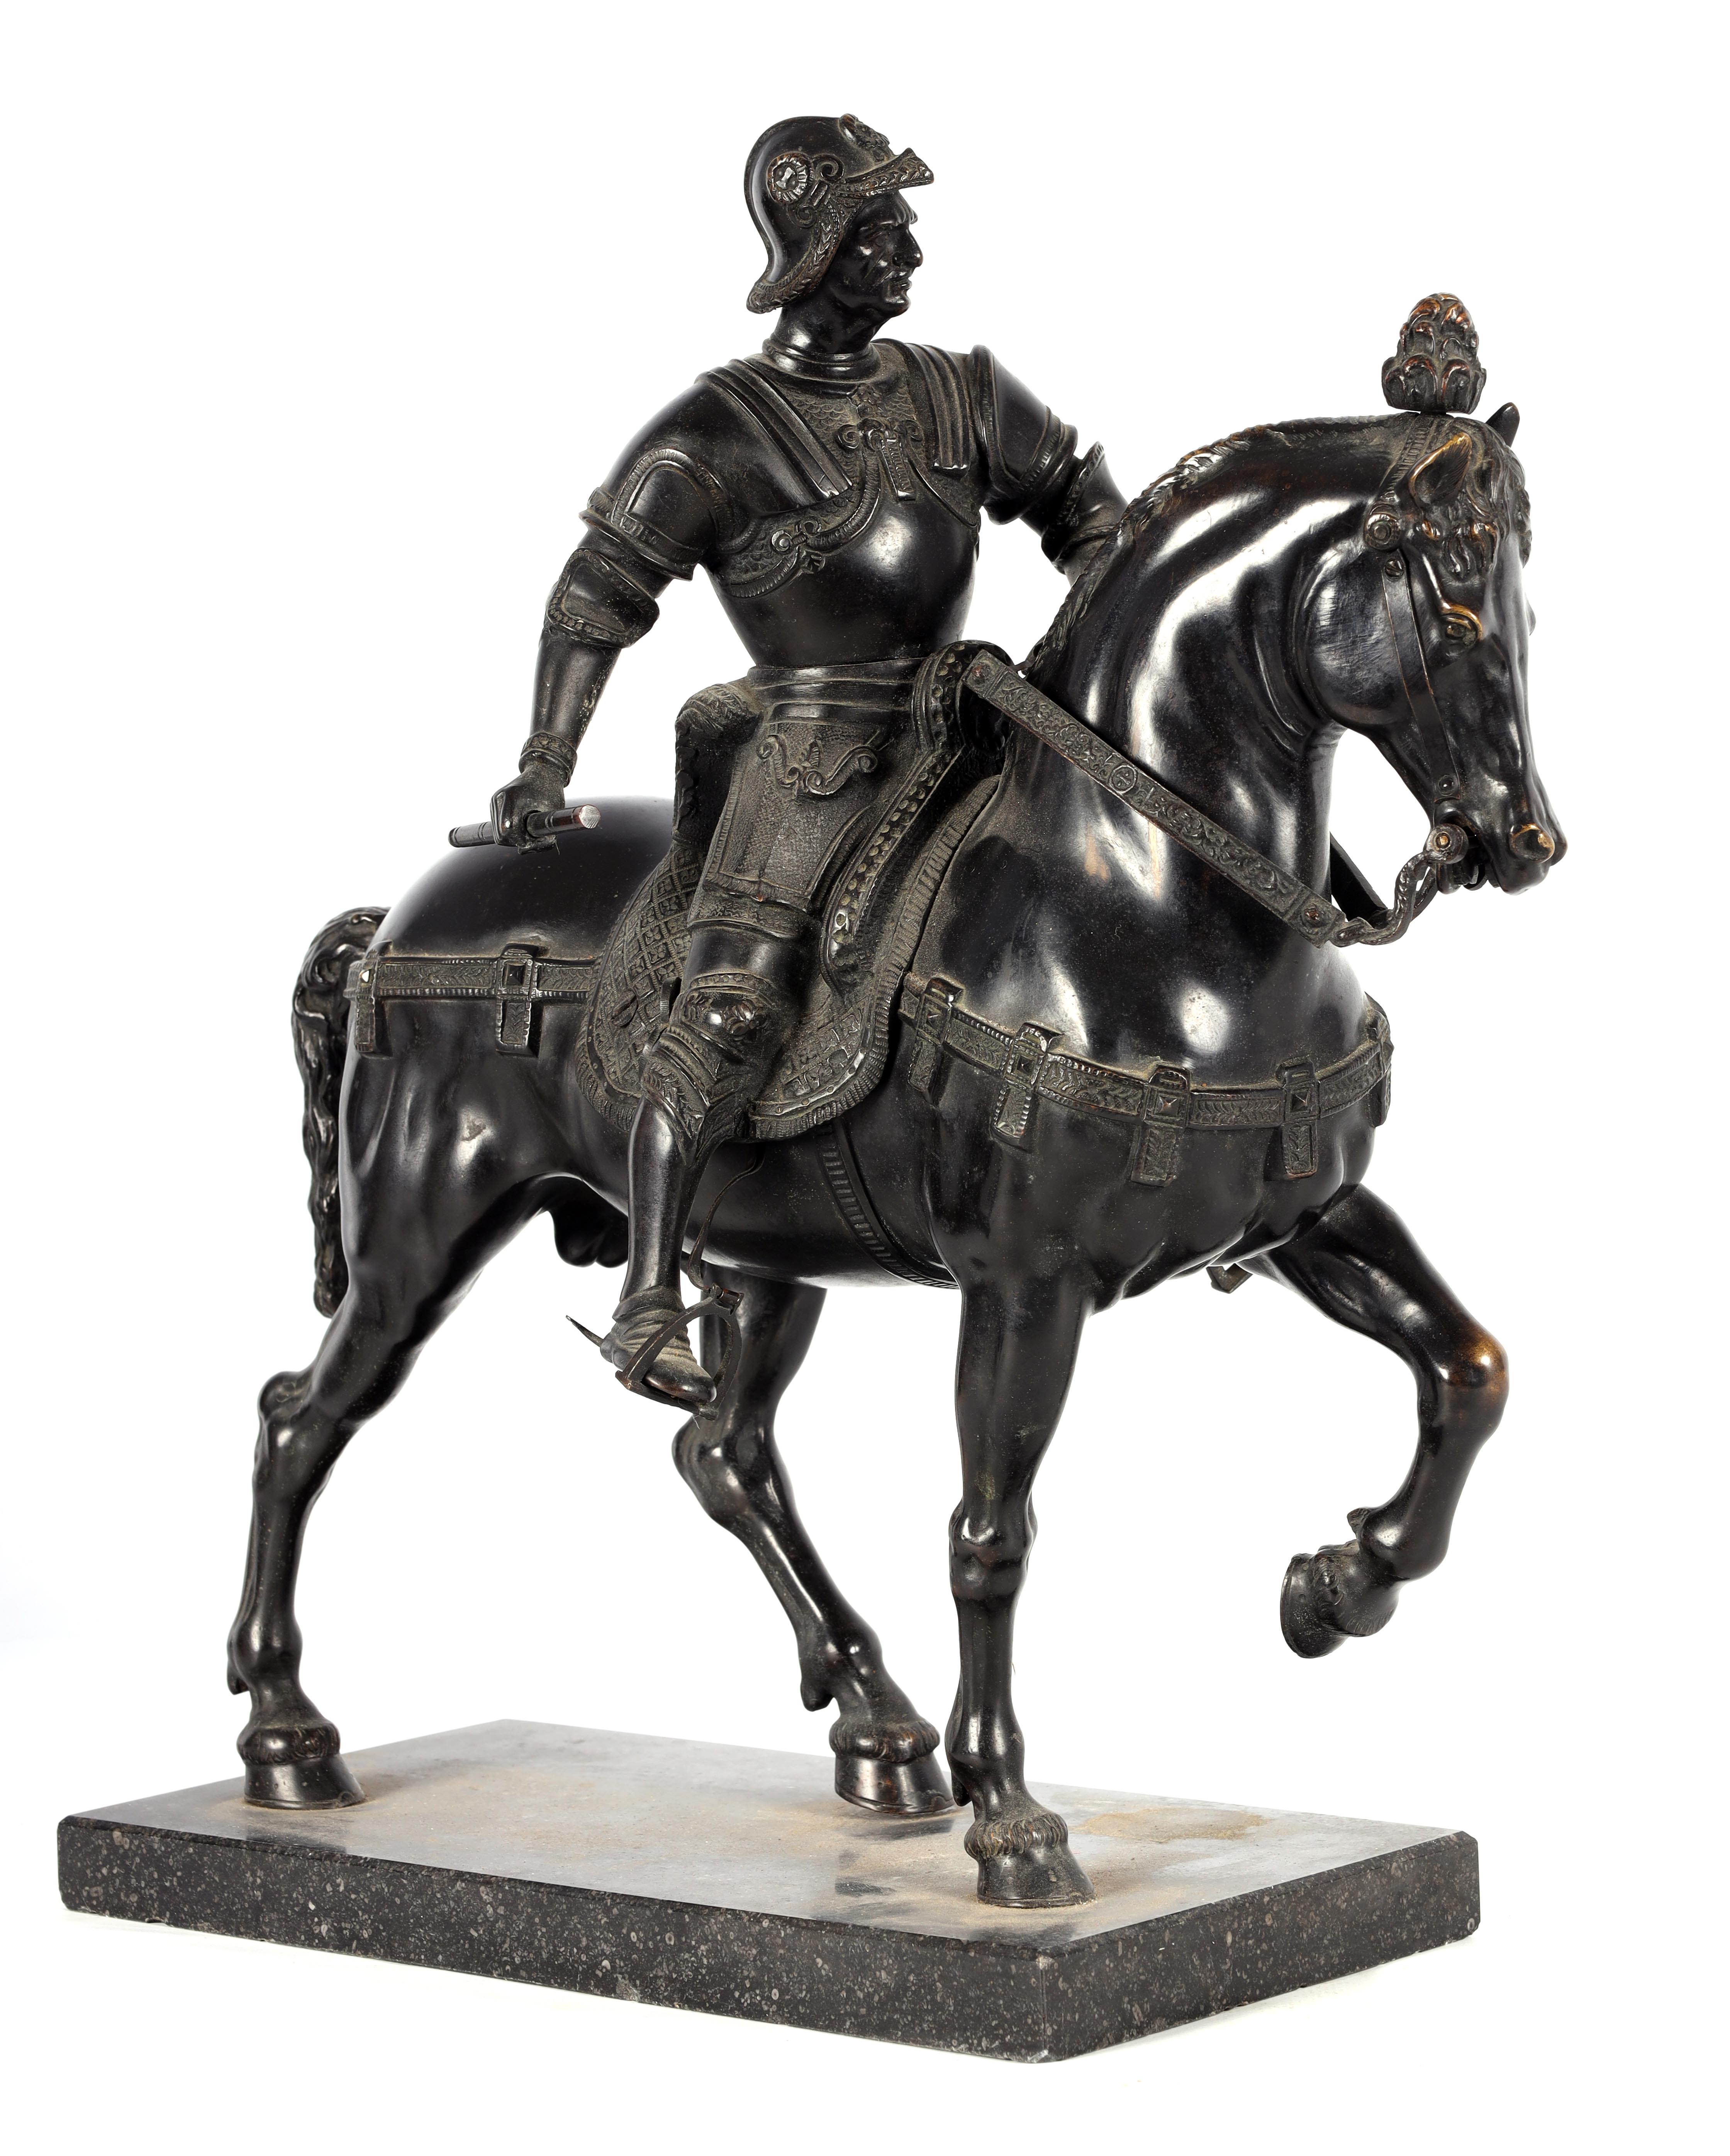 A LATE 19TH CENTURY PATINATED BRONZE EQUESTRIAN SCULPTURE modelled as a Knight on horseback of